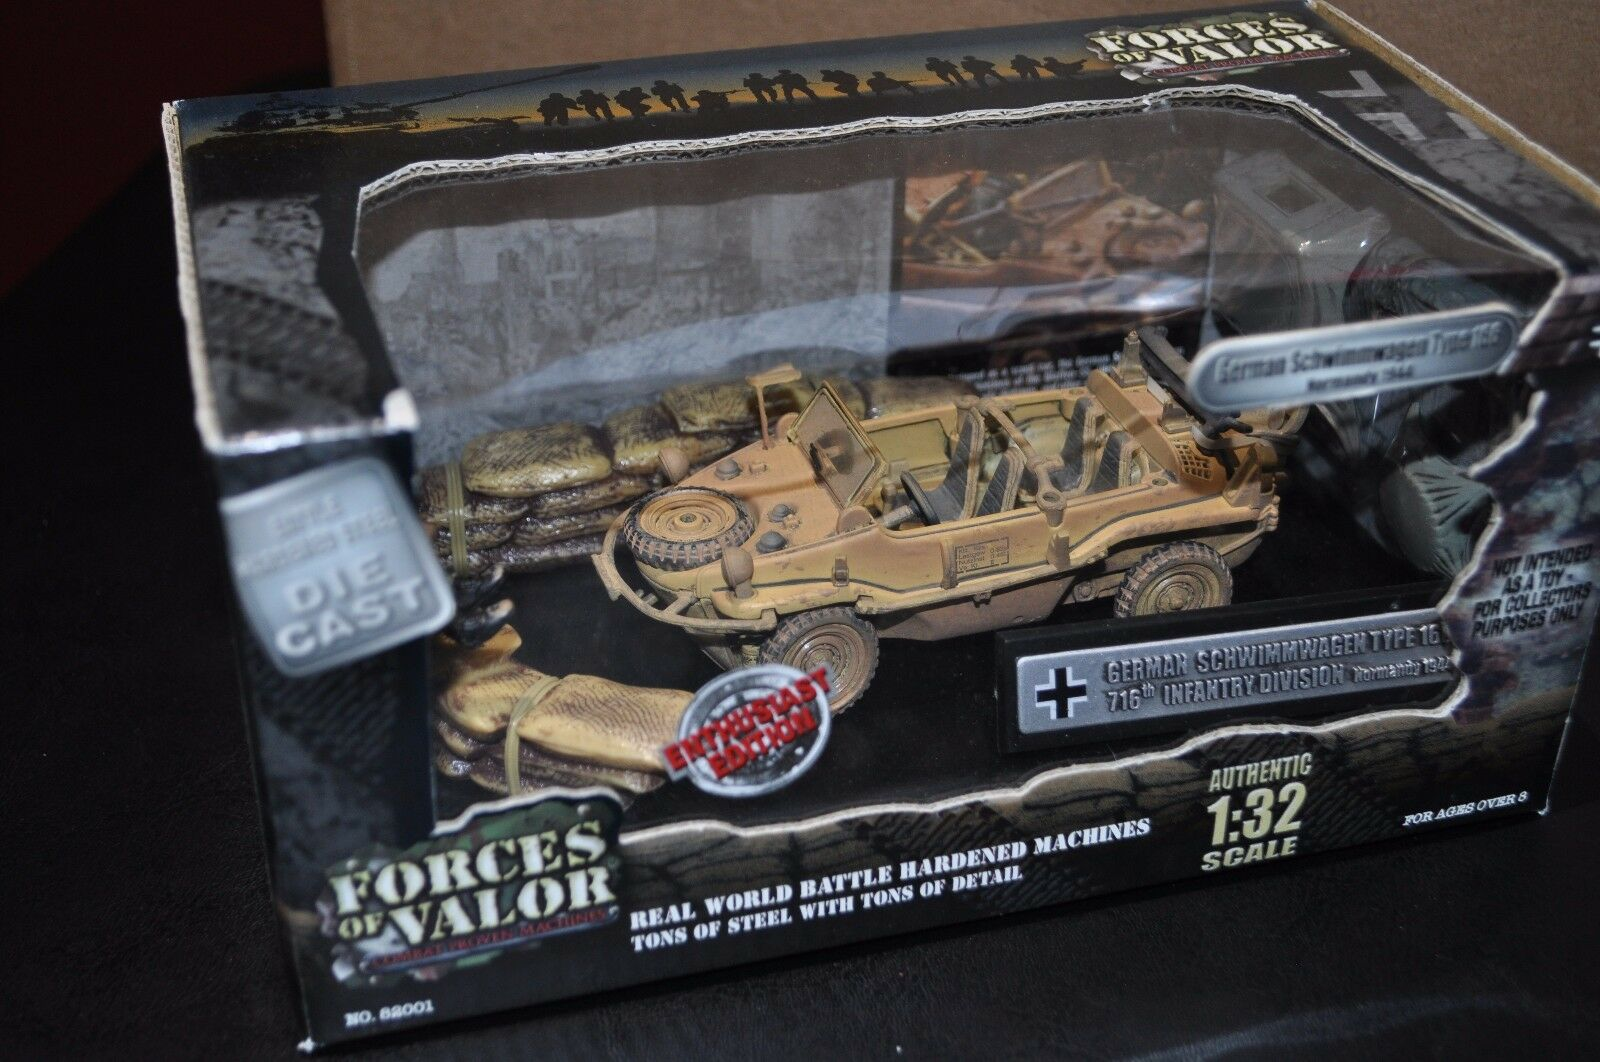 New Forces of valor 1 32 Rare German Schwimmwagen Type 166 Normandy WWII Diorama